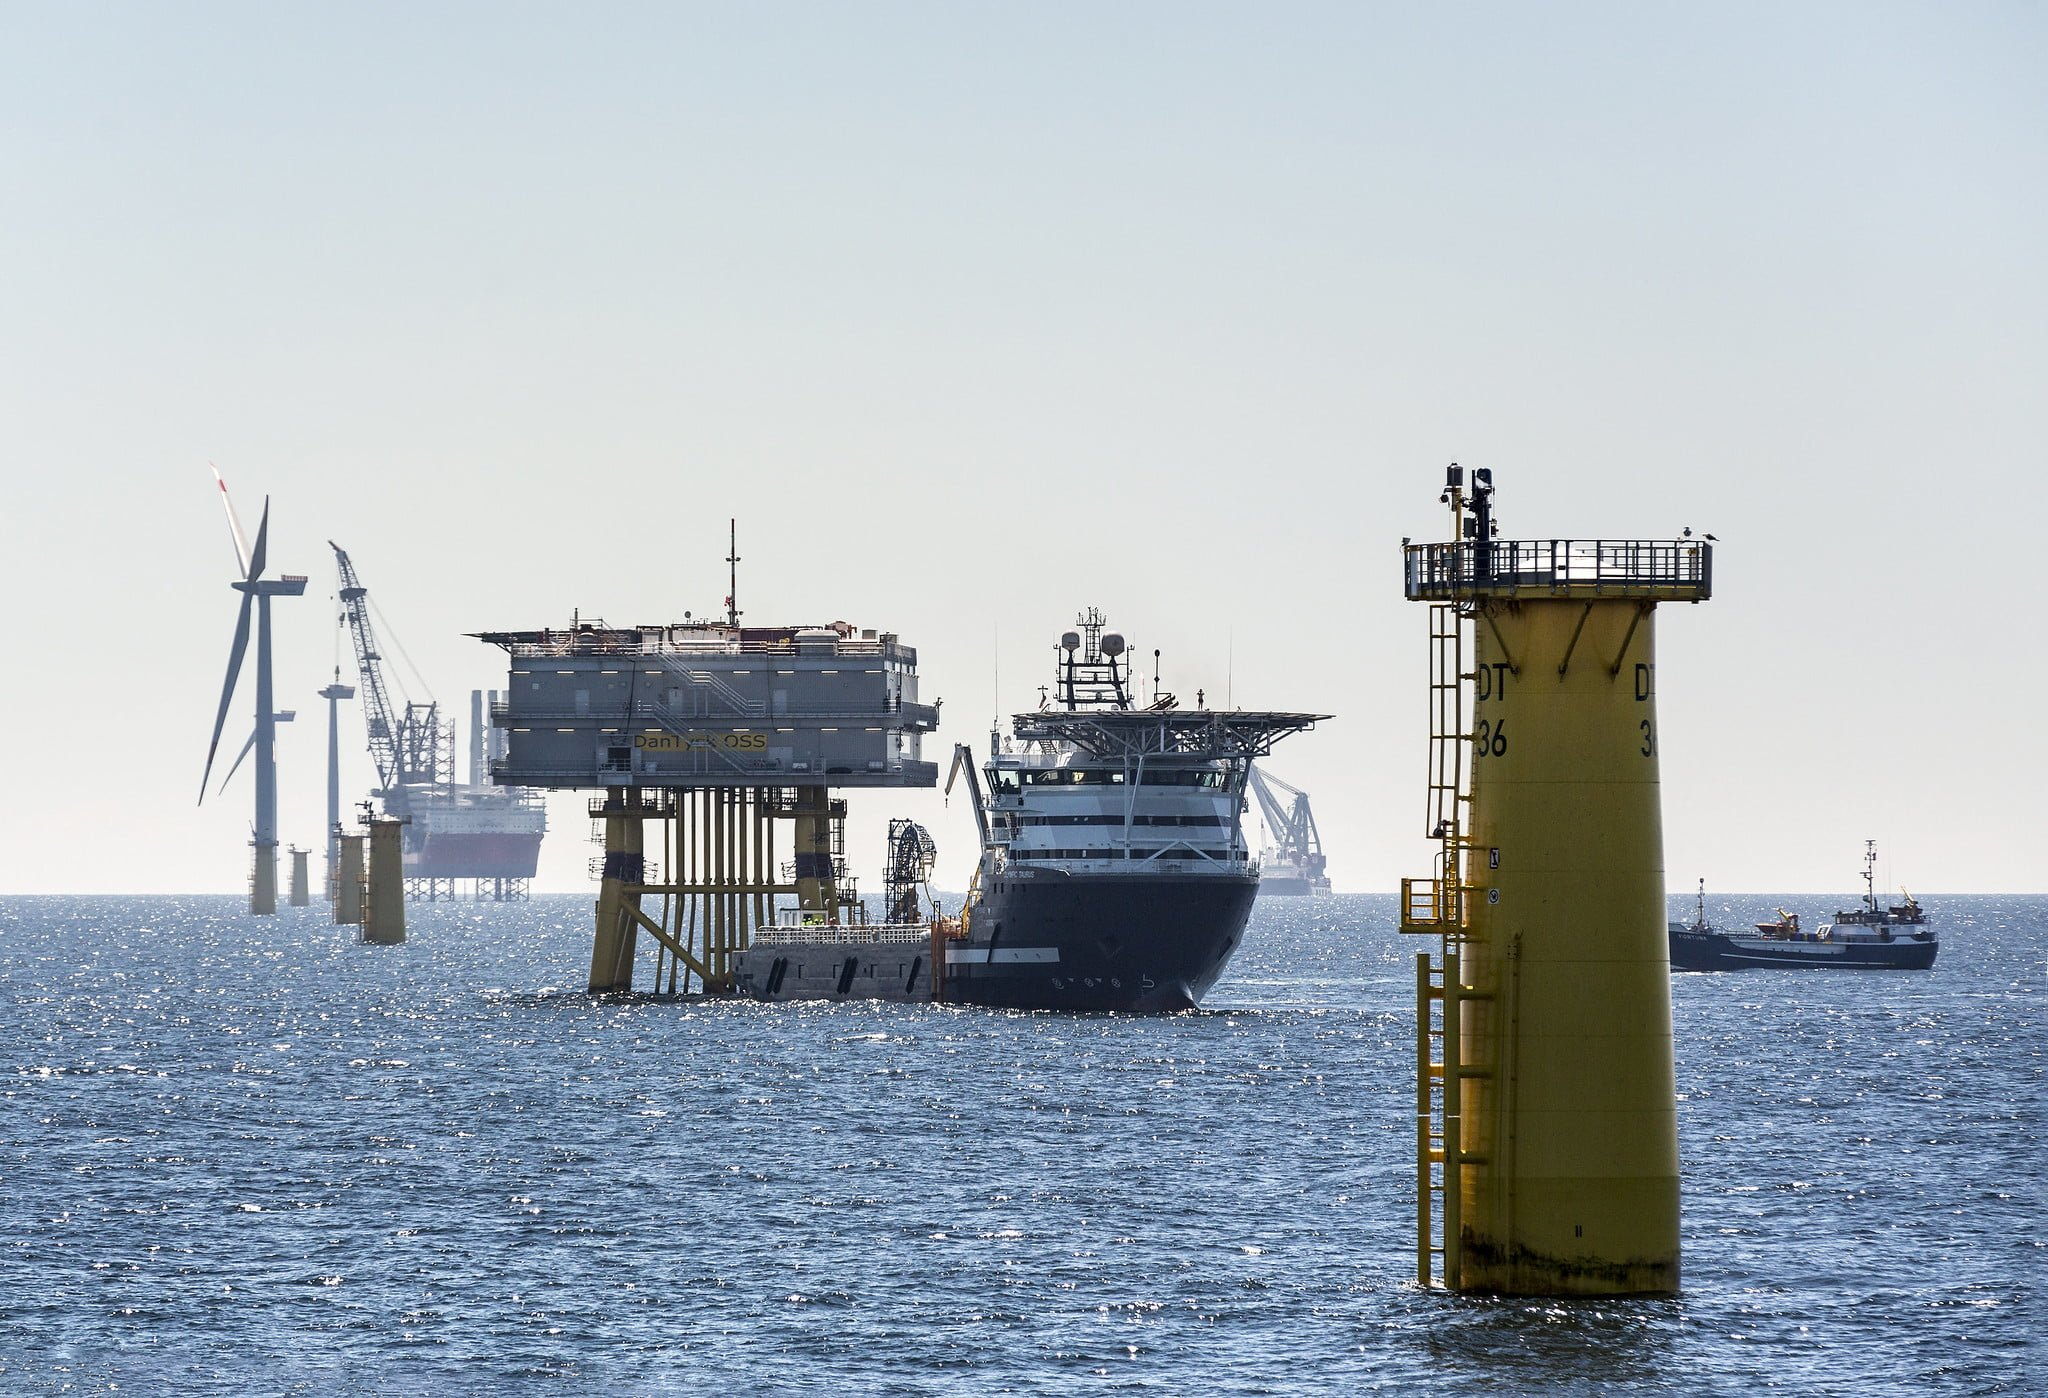 Offshore wind farm in construction